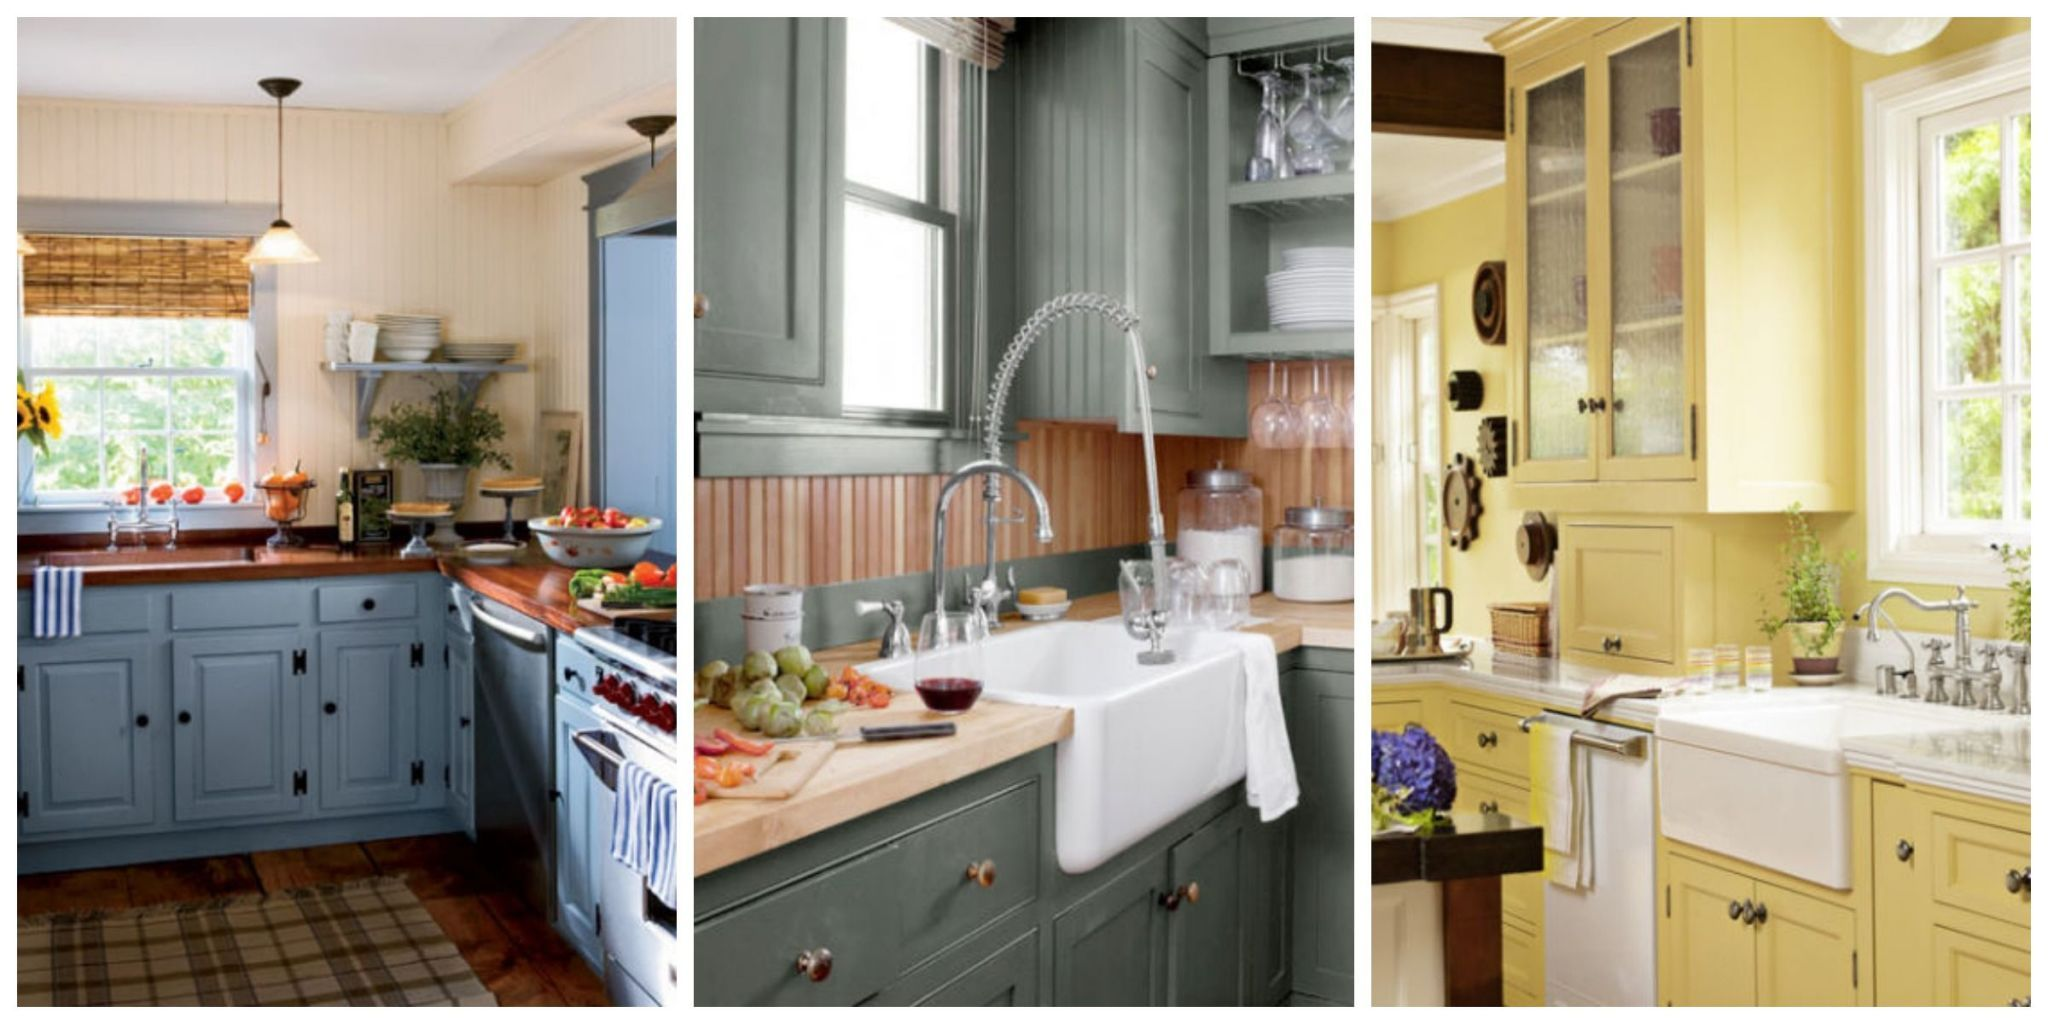 Create a beautiful and colorful kitchen with these paint and decorating ideas. Also check out these 100+ kitchen design ideas for more inspiration. & 15+ Best Kitchen Color Ideas - Paint and Color Schemes for Kitchens